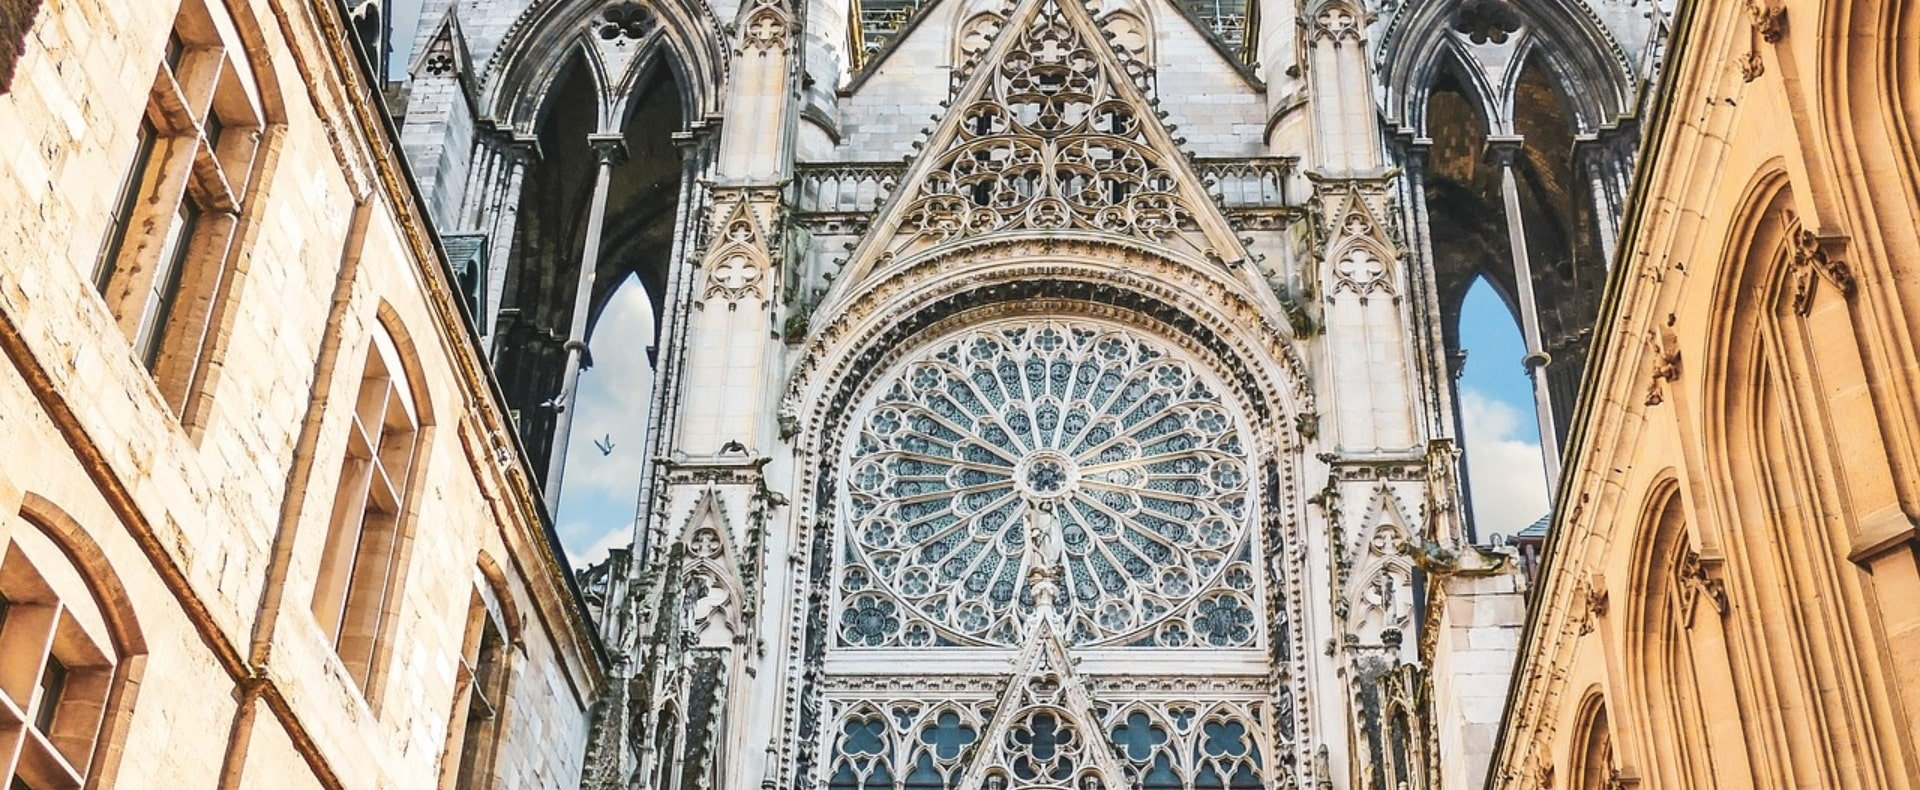 Rouen Cathedral Experience Gallery